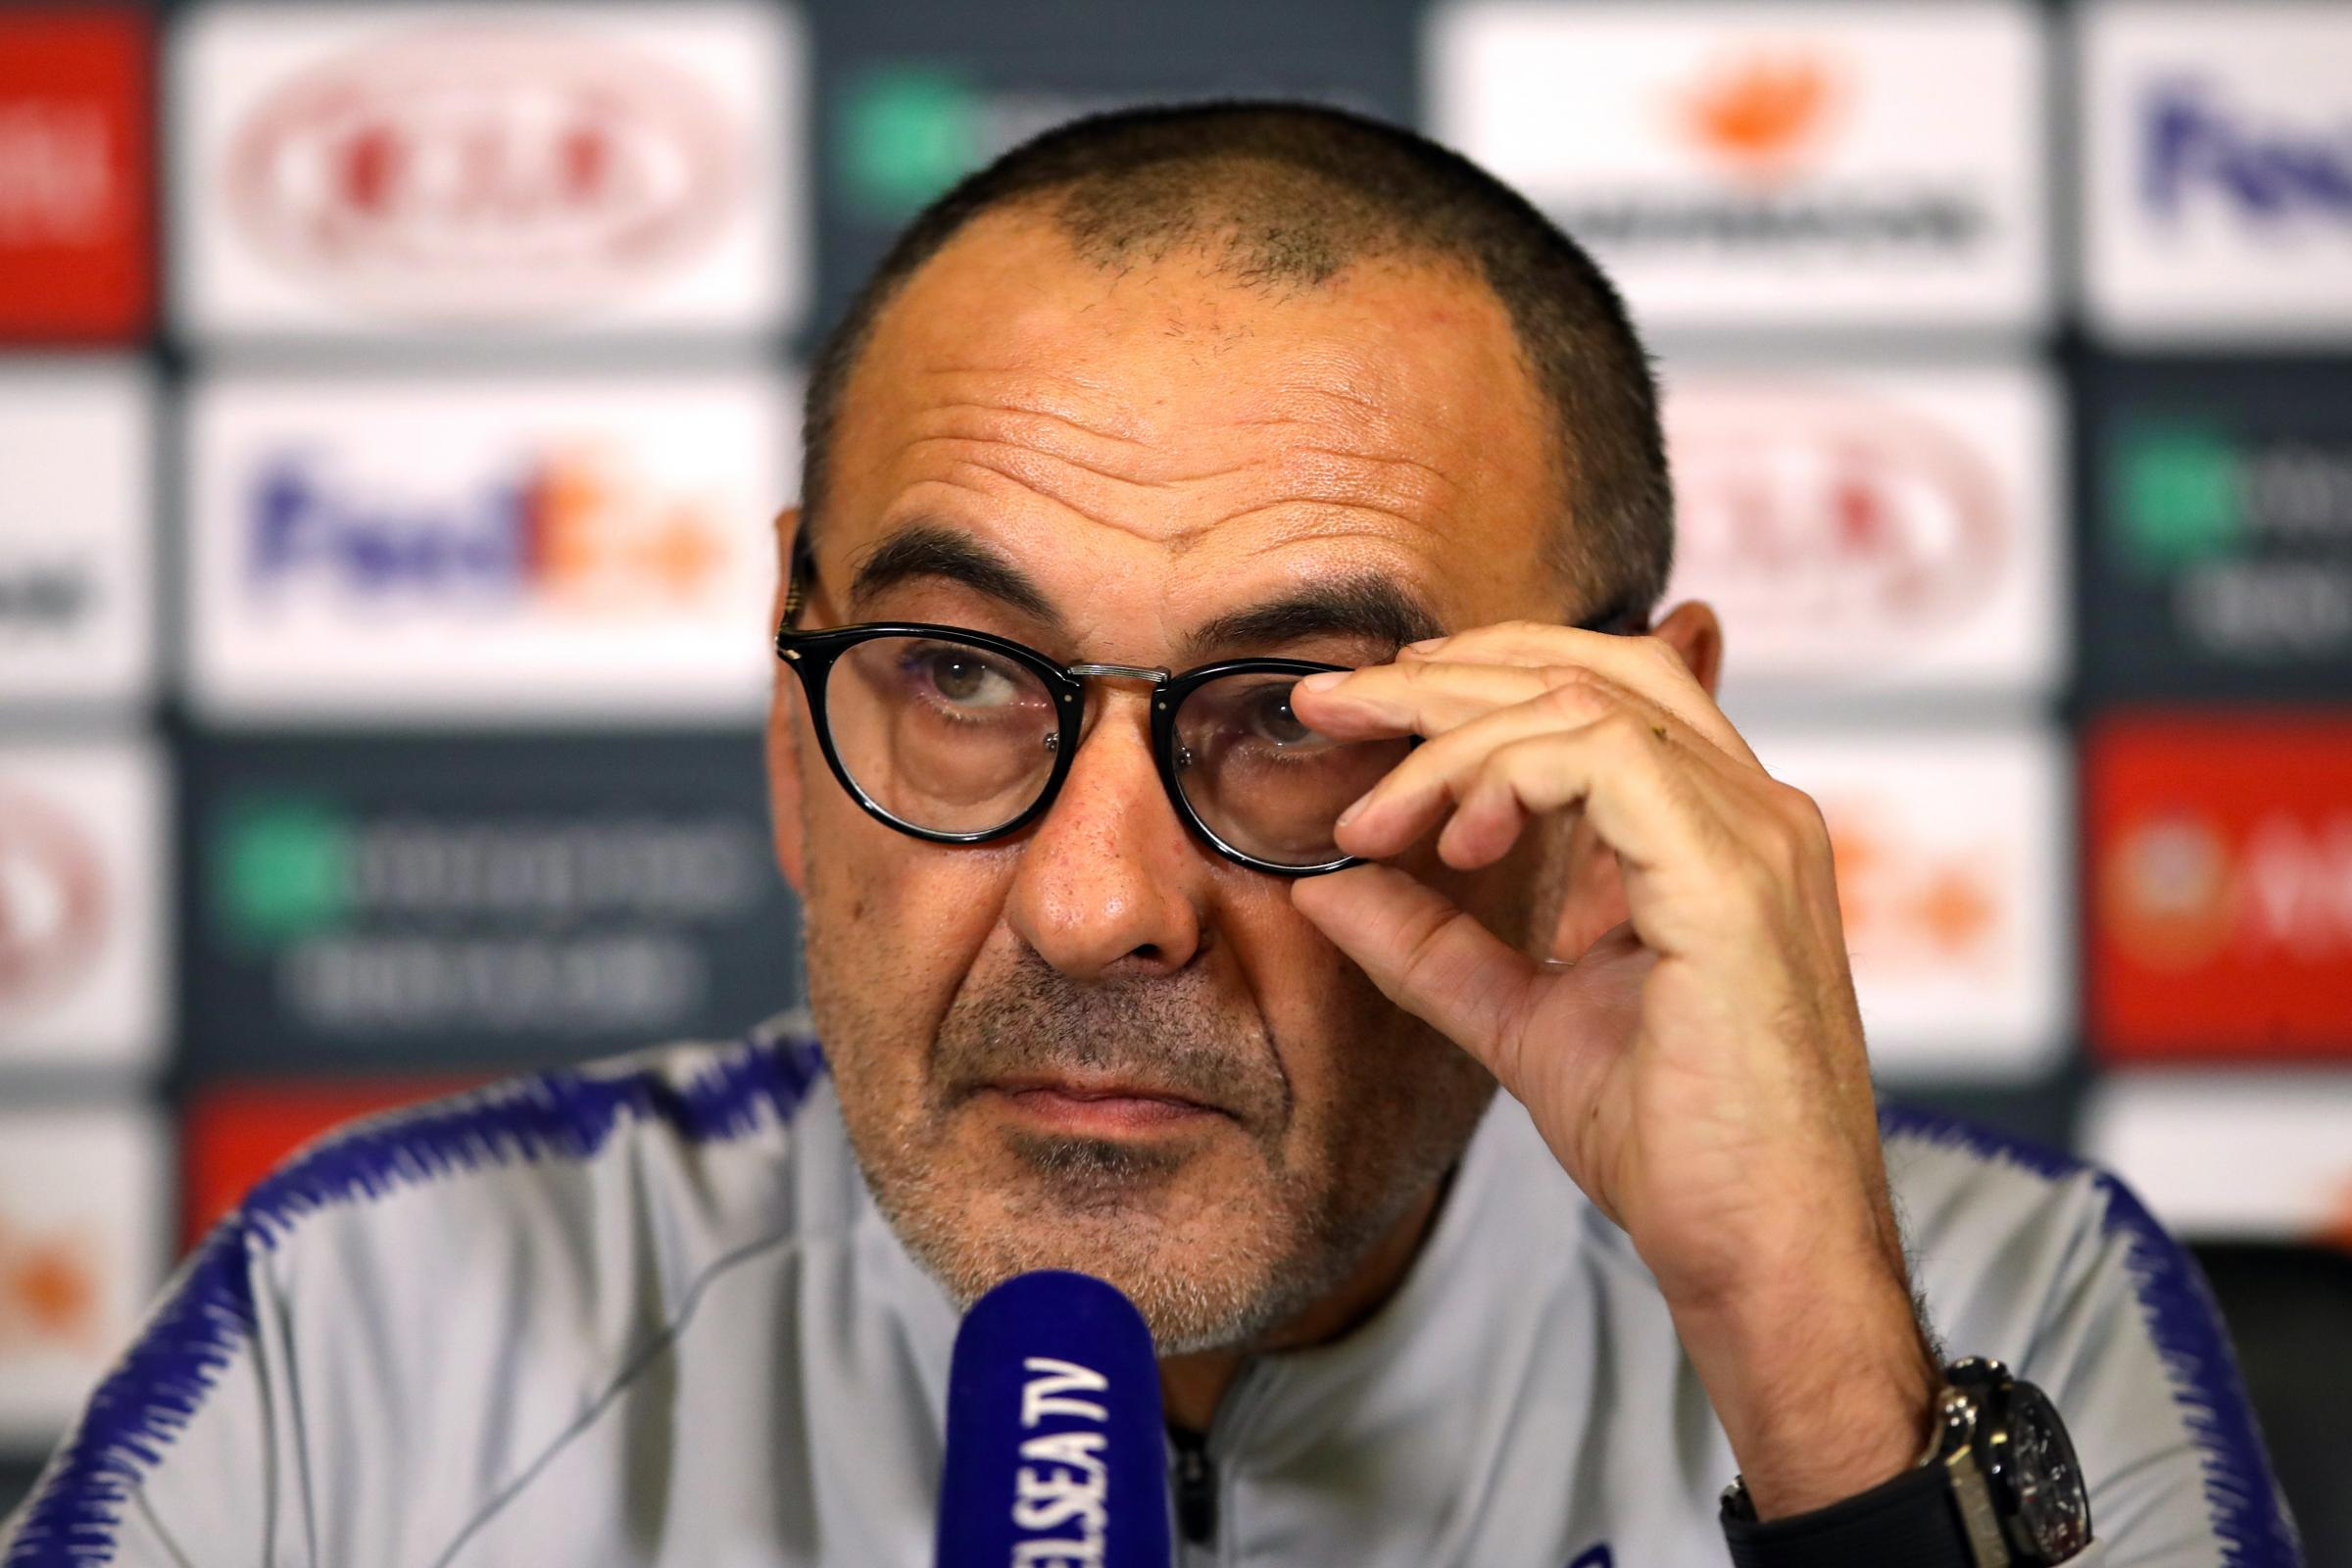 Maurizio Sarri forecast difficulties at Chelsea - they have just come later than he anticipated